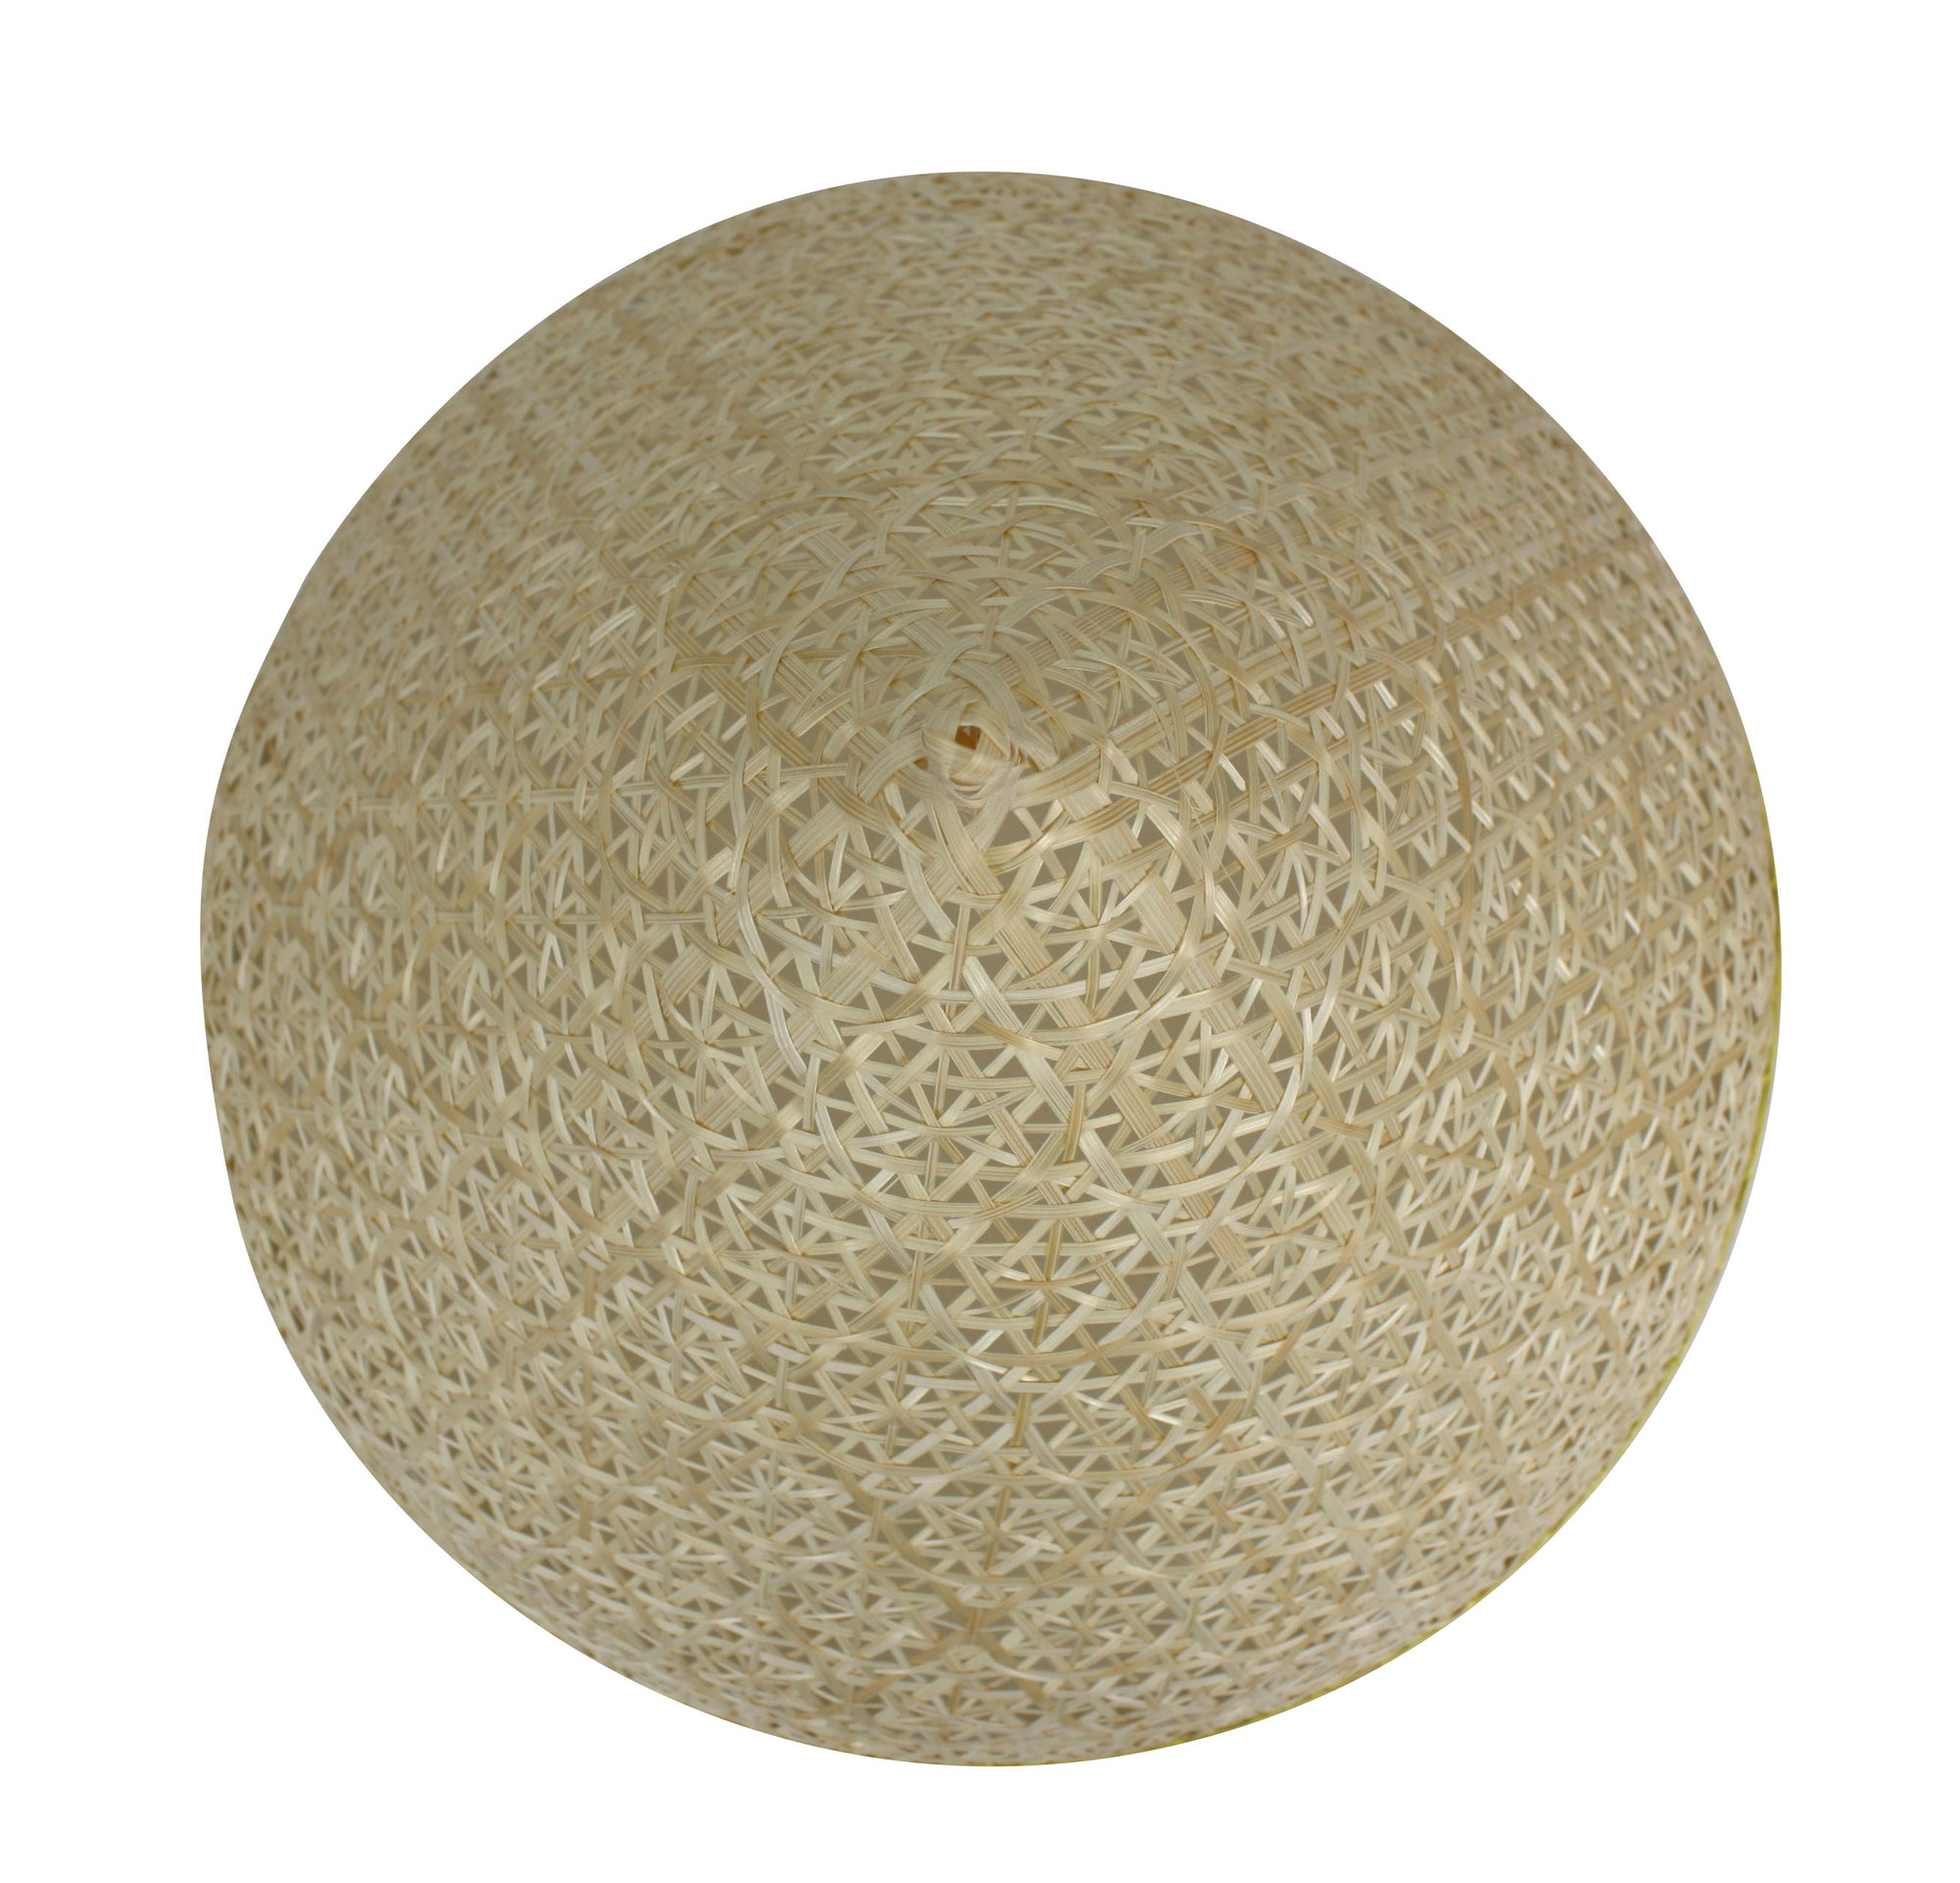 Thai Bamboo Lampshade, or Food Cover - 31.5cm diameter. Hand woven. - farangshop-co